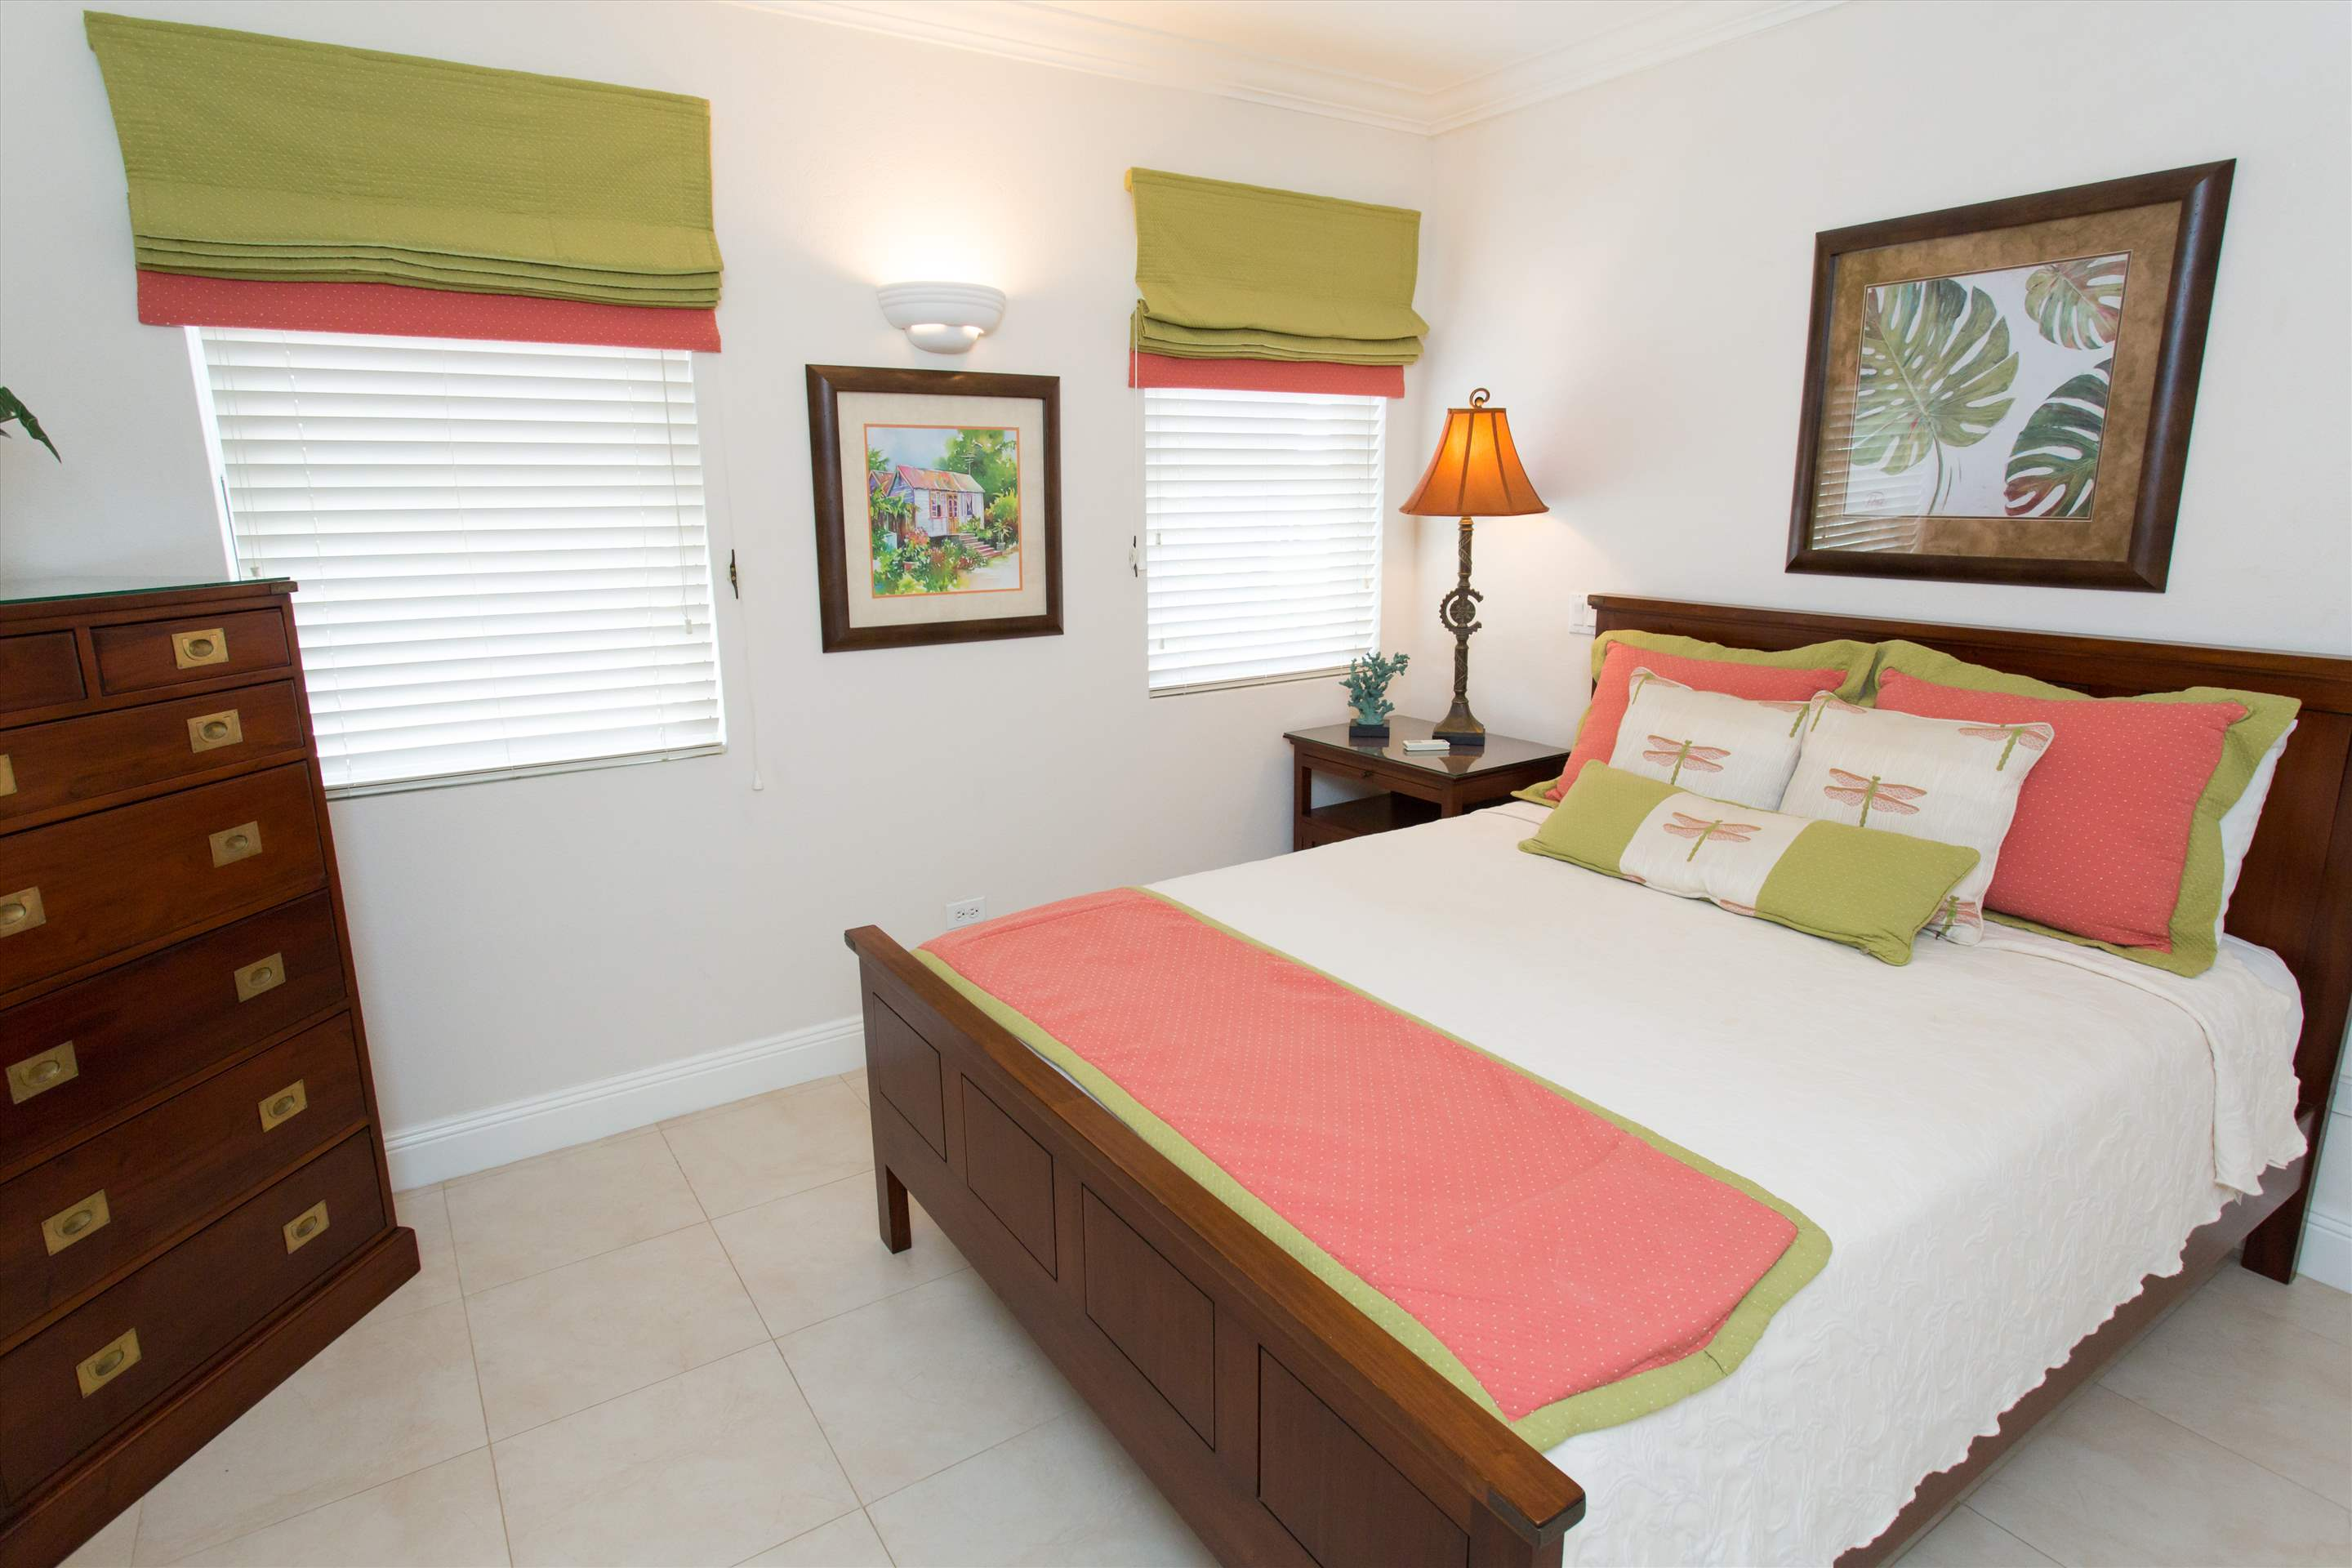 Sandy Hook 21, 2 bedroom, 2 bedroom villa in St. Lawrence Gap & South Coast, Barbados Photo #13